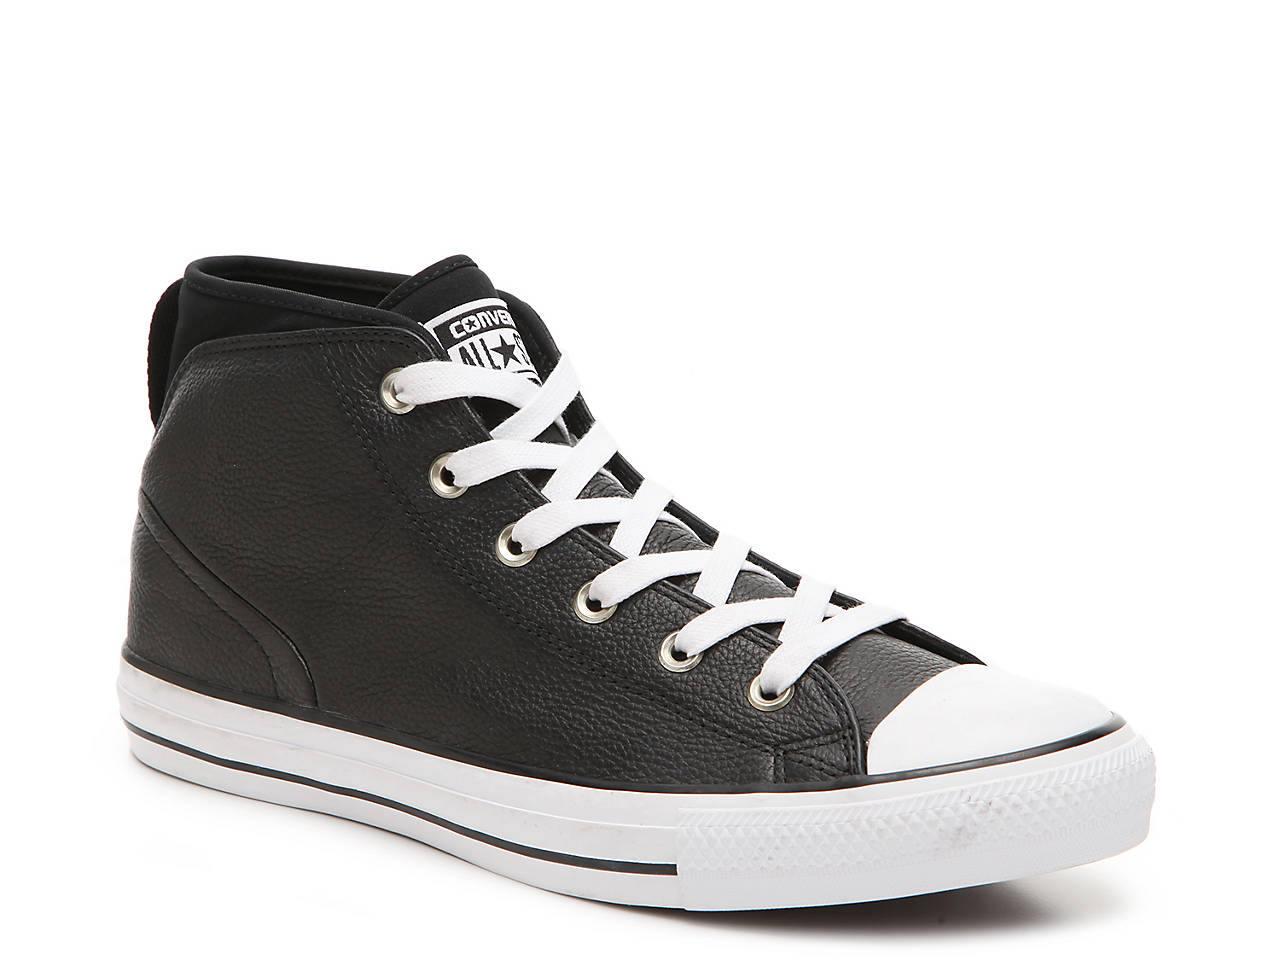 Converse Chuck Taylor All Star Syde Street High-Top Sneaker - Men s ... 2618b06f5